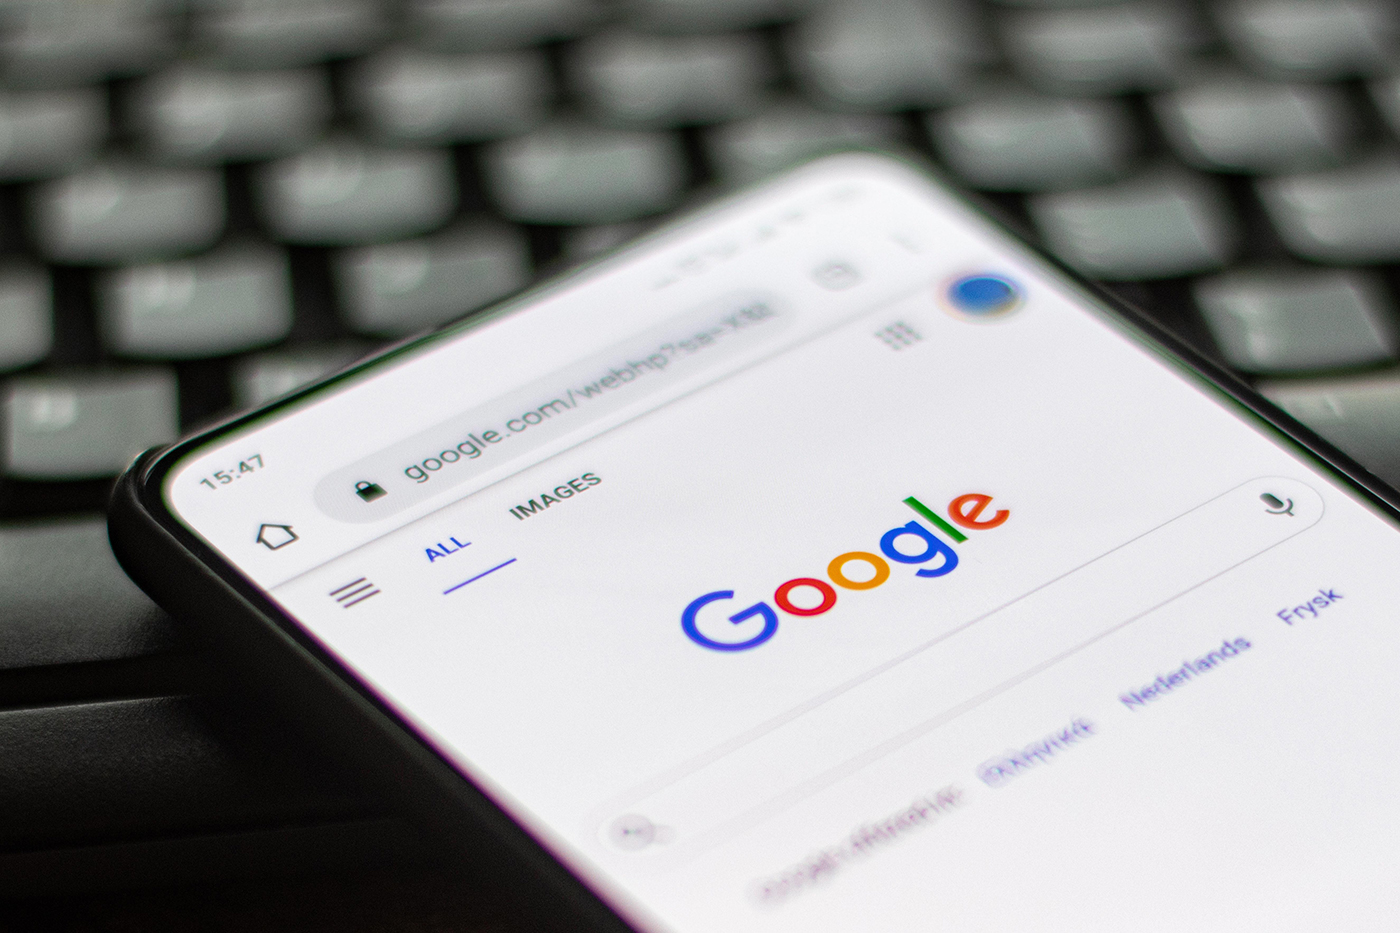 Google closeup logo displayed on a phone screen, smartphone on a keyboard is seen in this multiple exposure illustration, the company's symbol is globally recognized